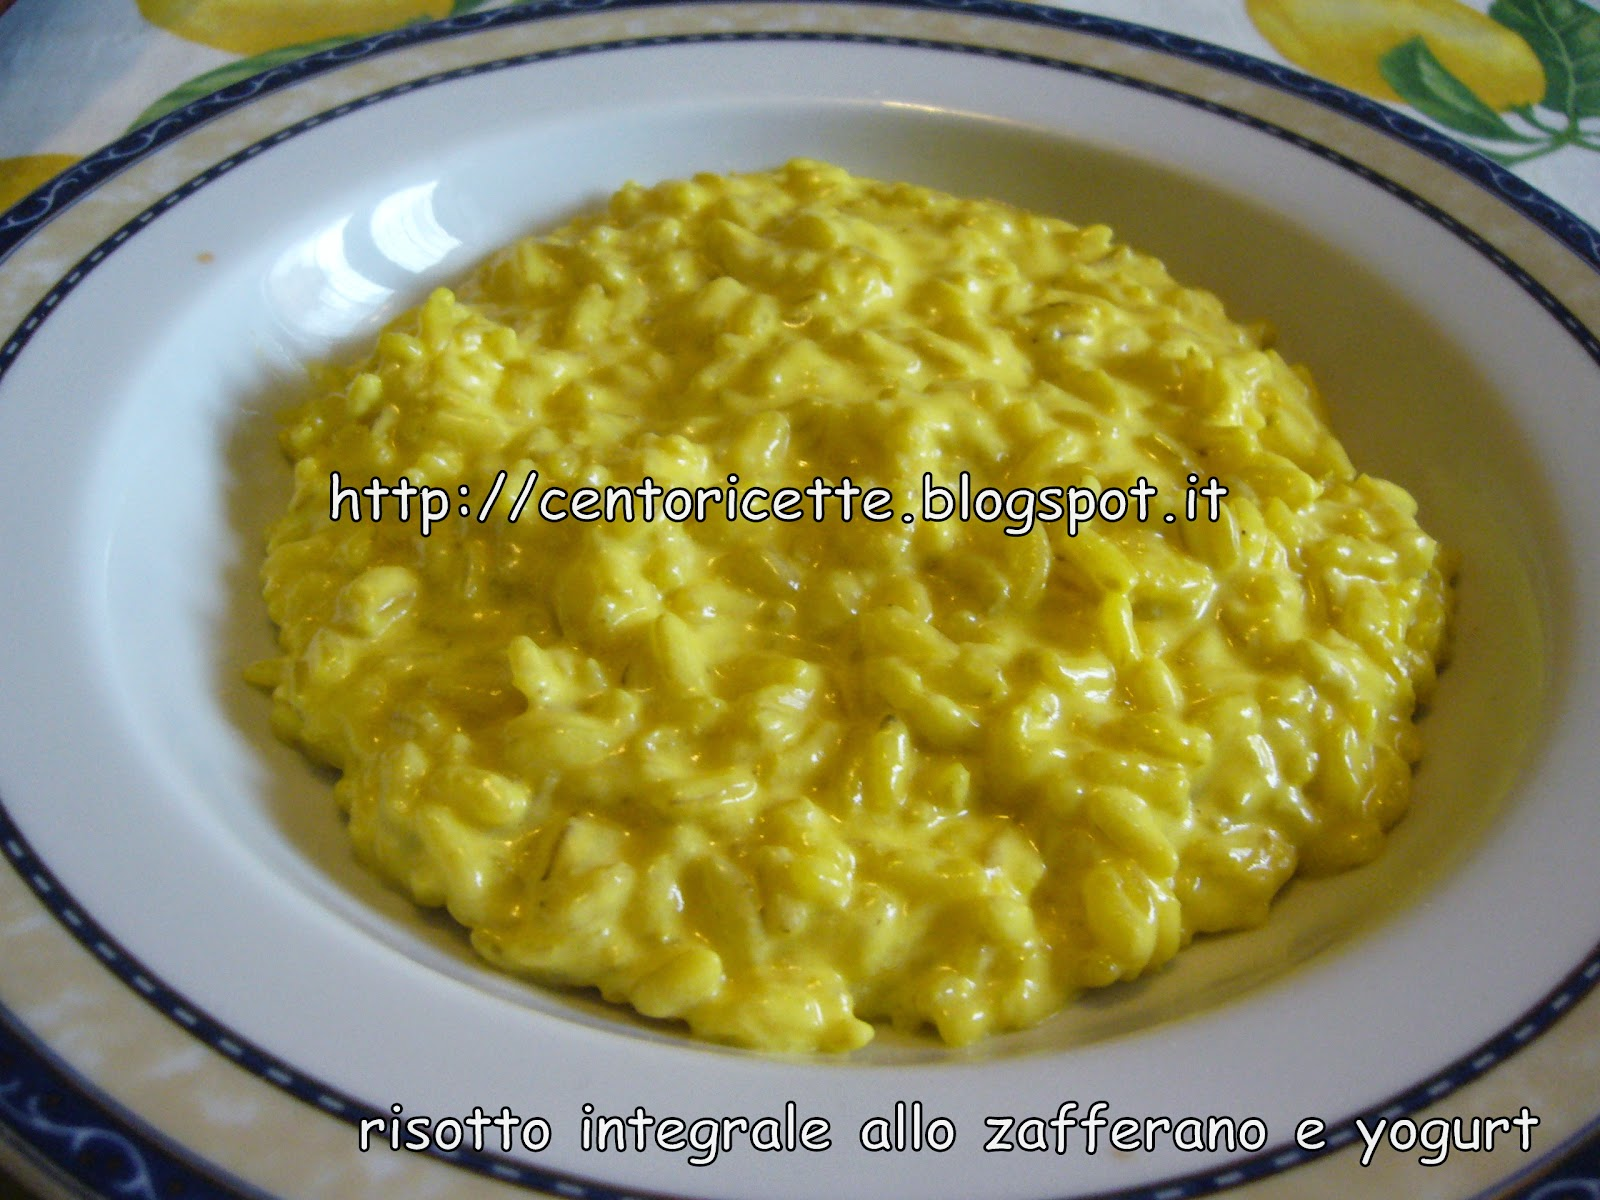 Risotto integrale allo zafferano e yogurt